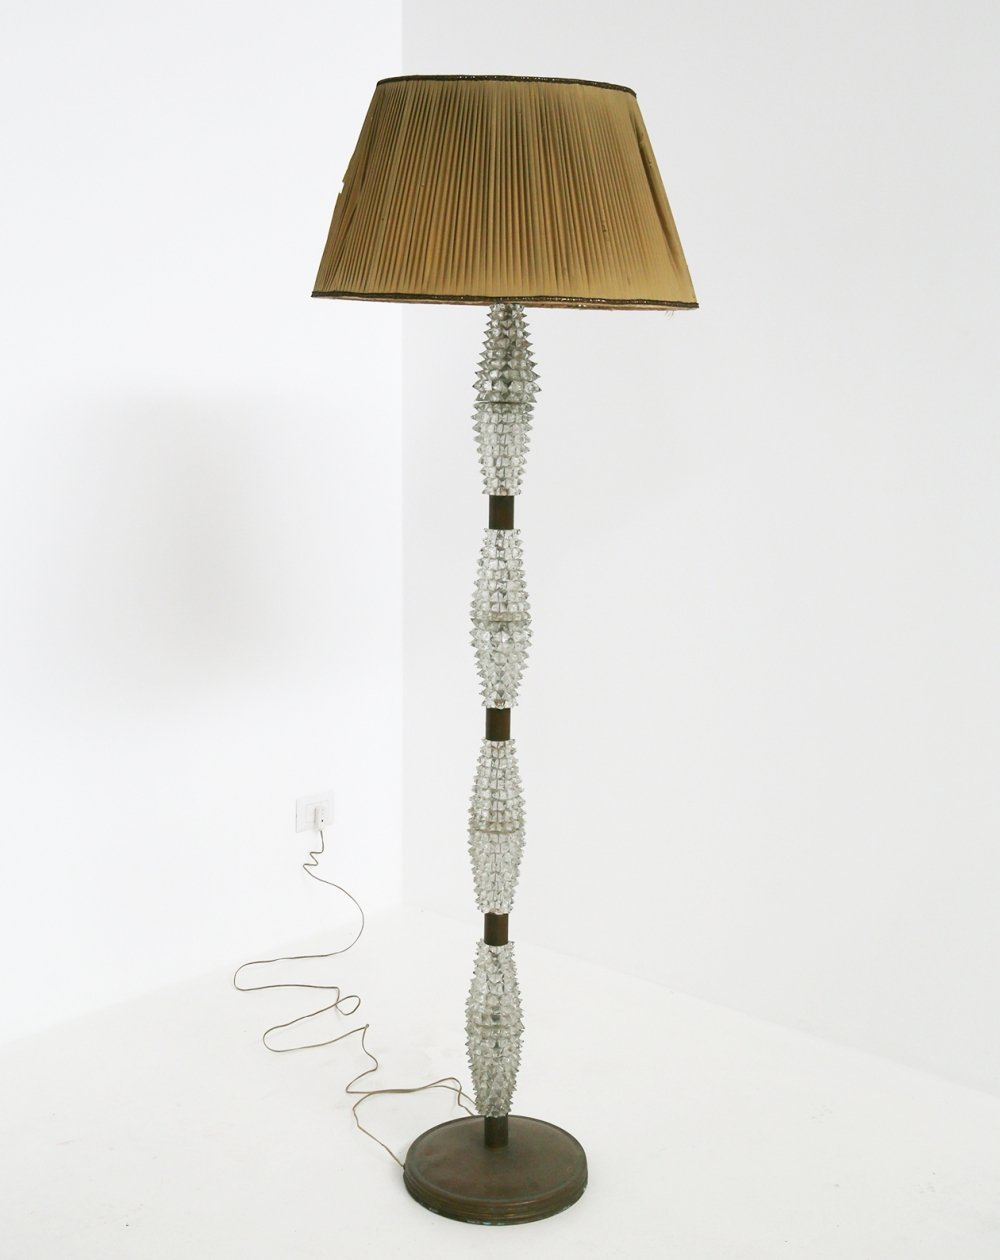 Italian Floor lamp by Barovier & Toso in rostrato glass & brass, 1940s